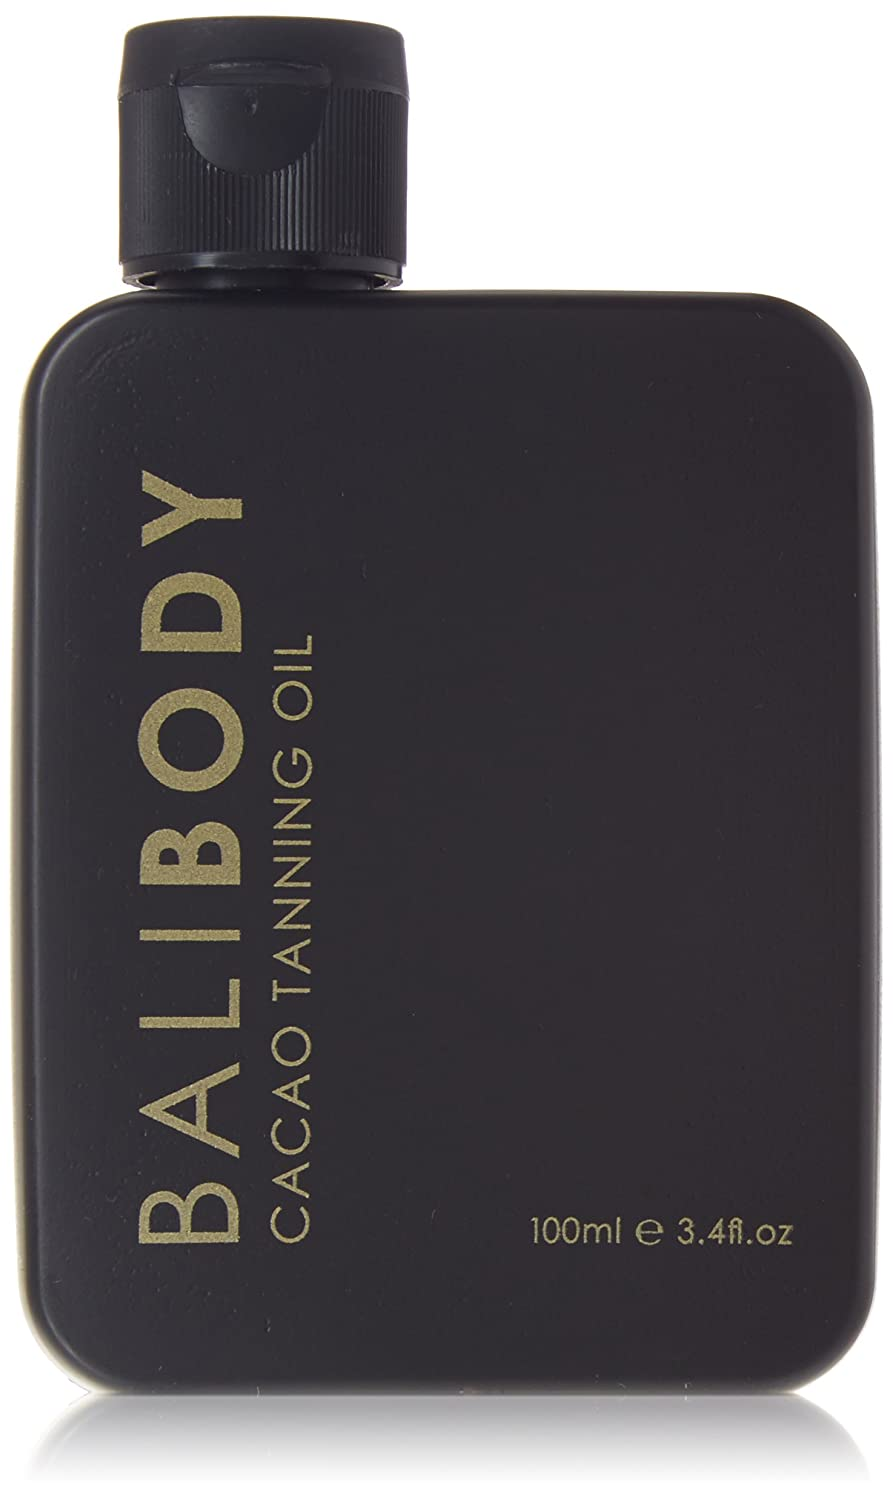 BALI BODY CACAO TANNING AND BODY OIL 110 ML